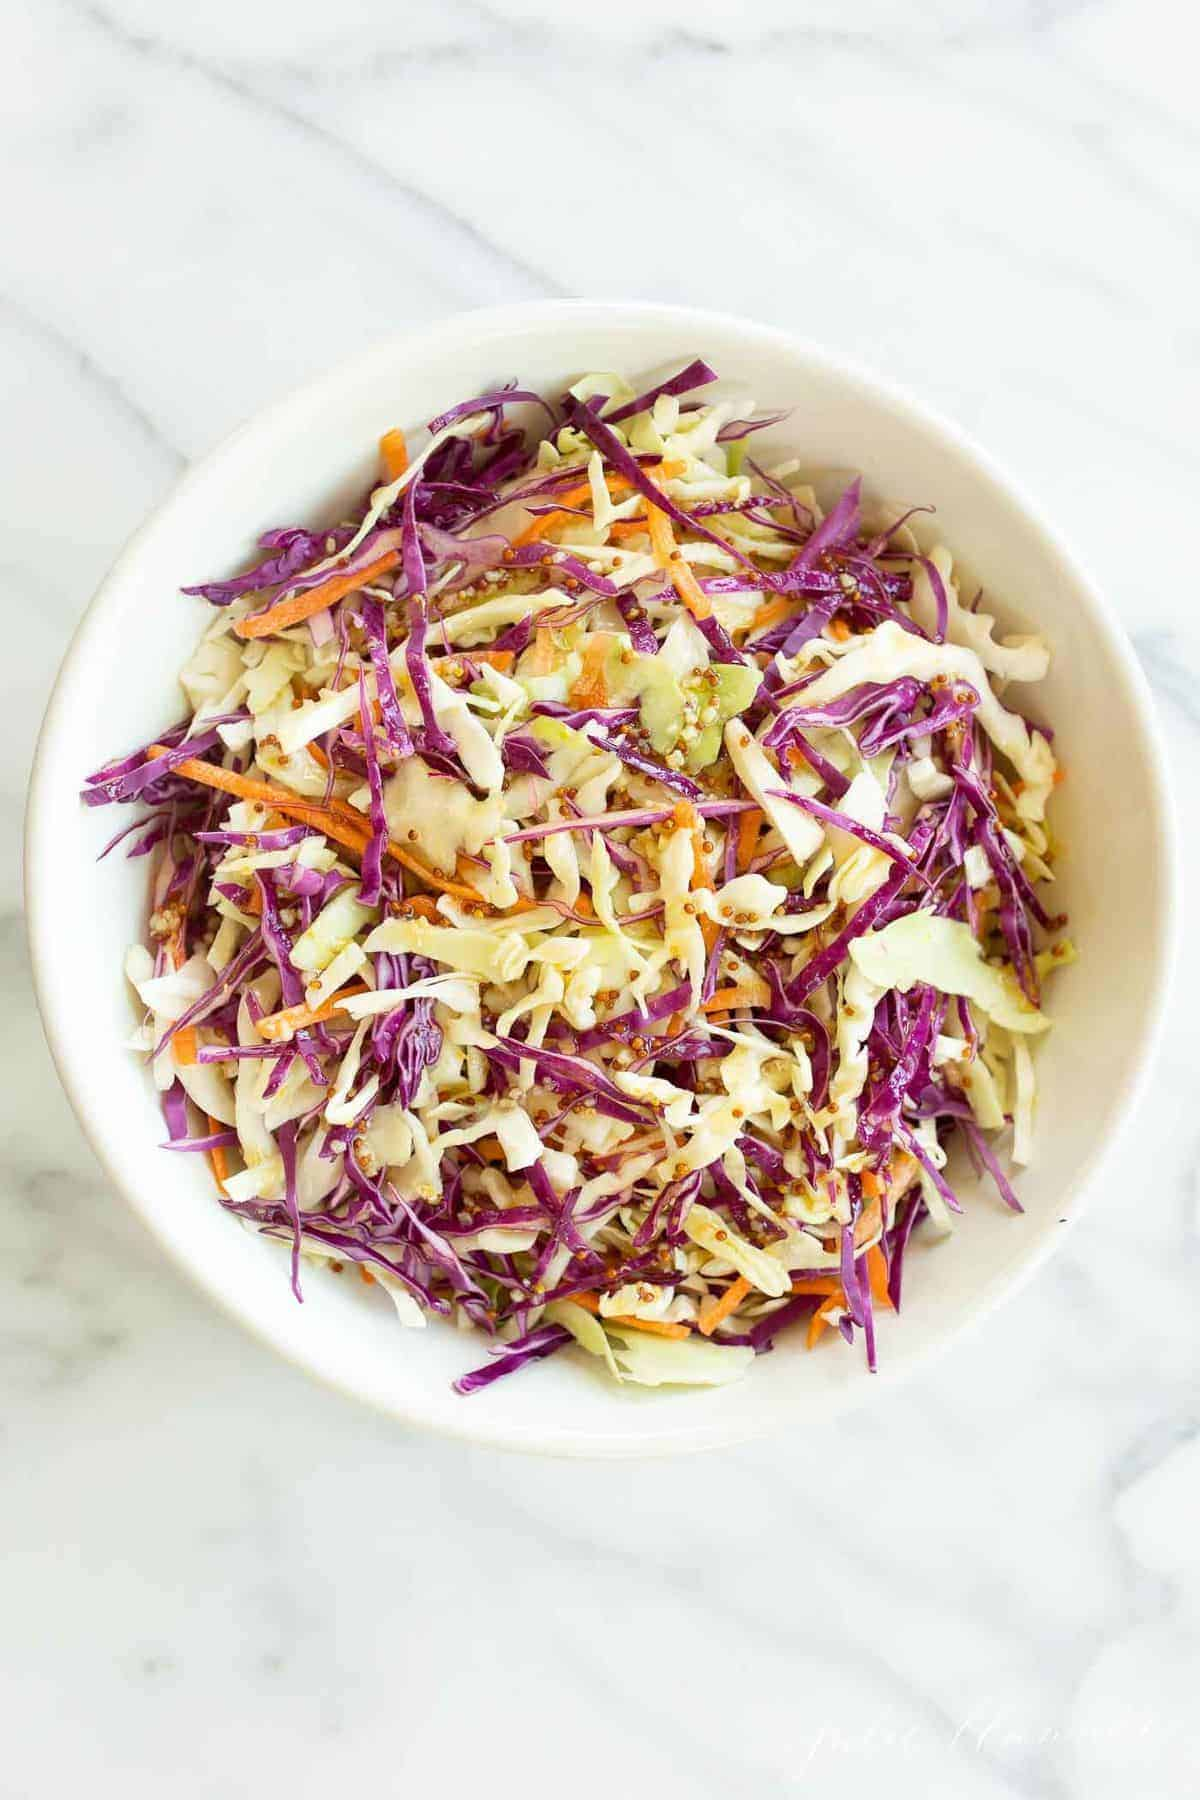 Colorful cabbage salad in a white bowl.